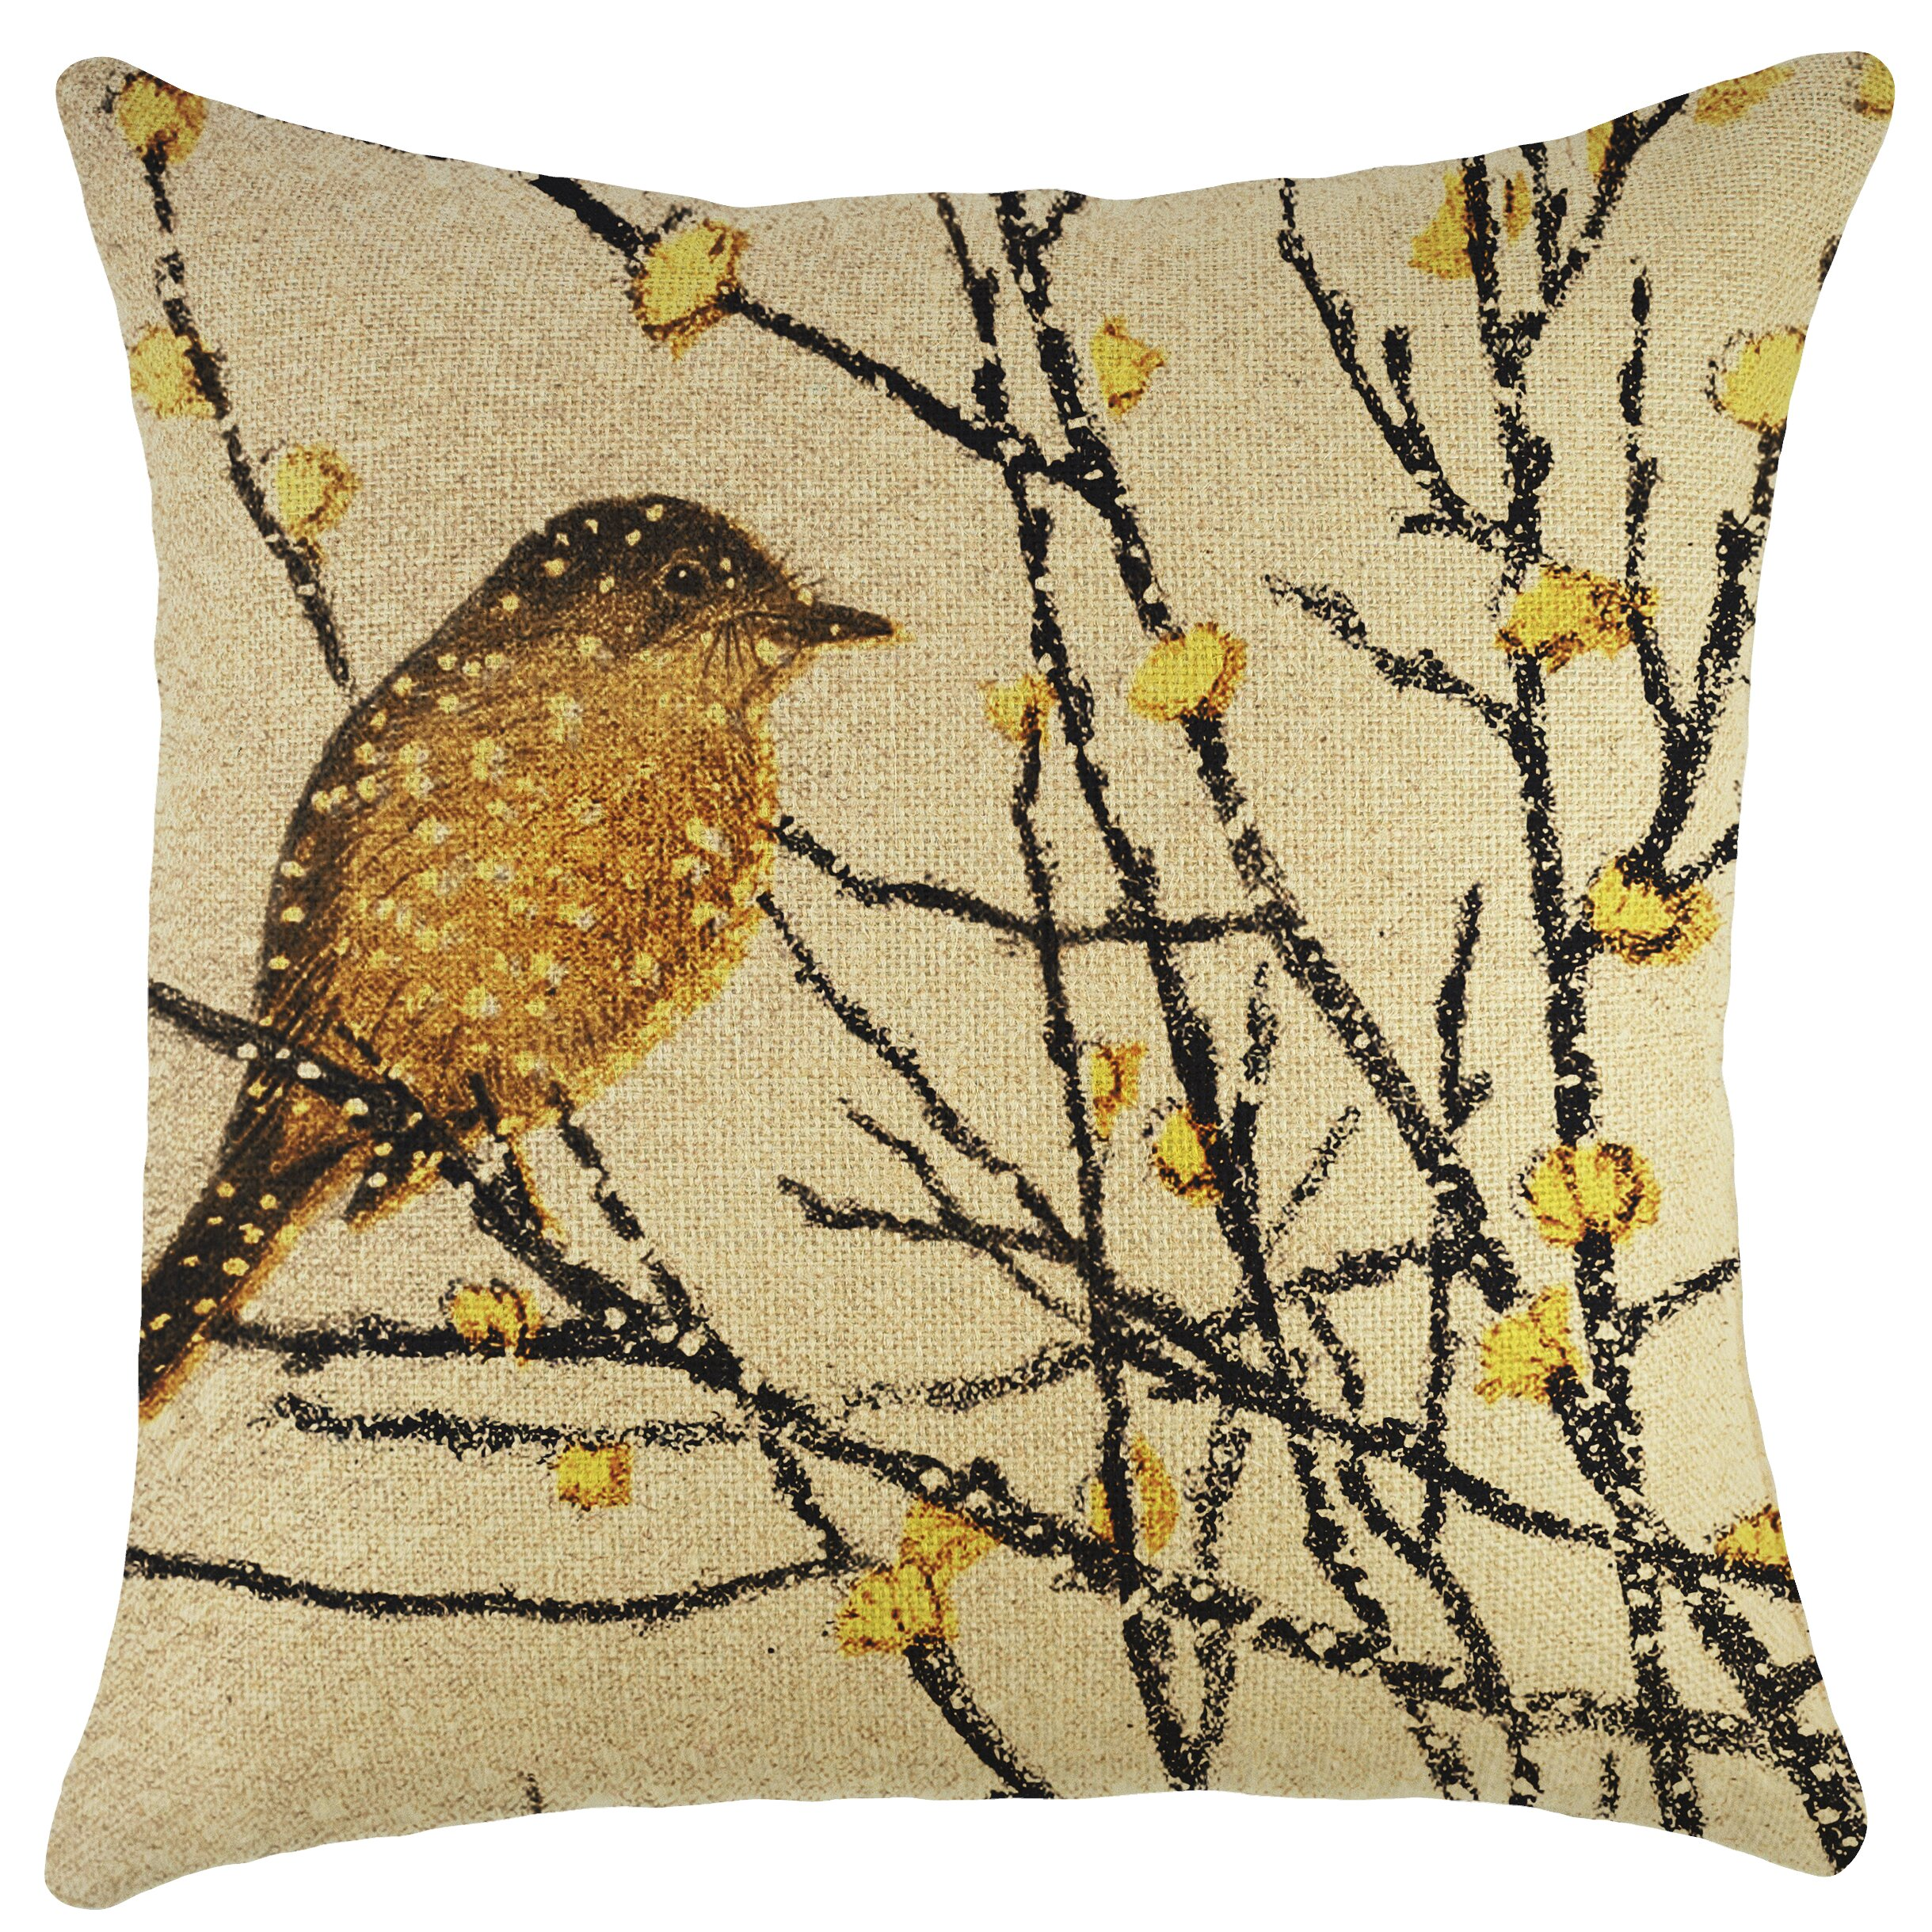 Decorative Pillows With Bird Design : TheWatsonShop Bird Burlap Throw Pillow & Reviews Wayfair